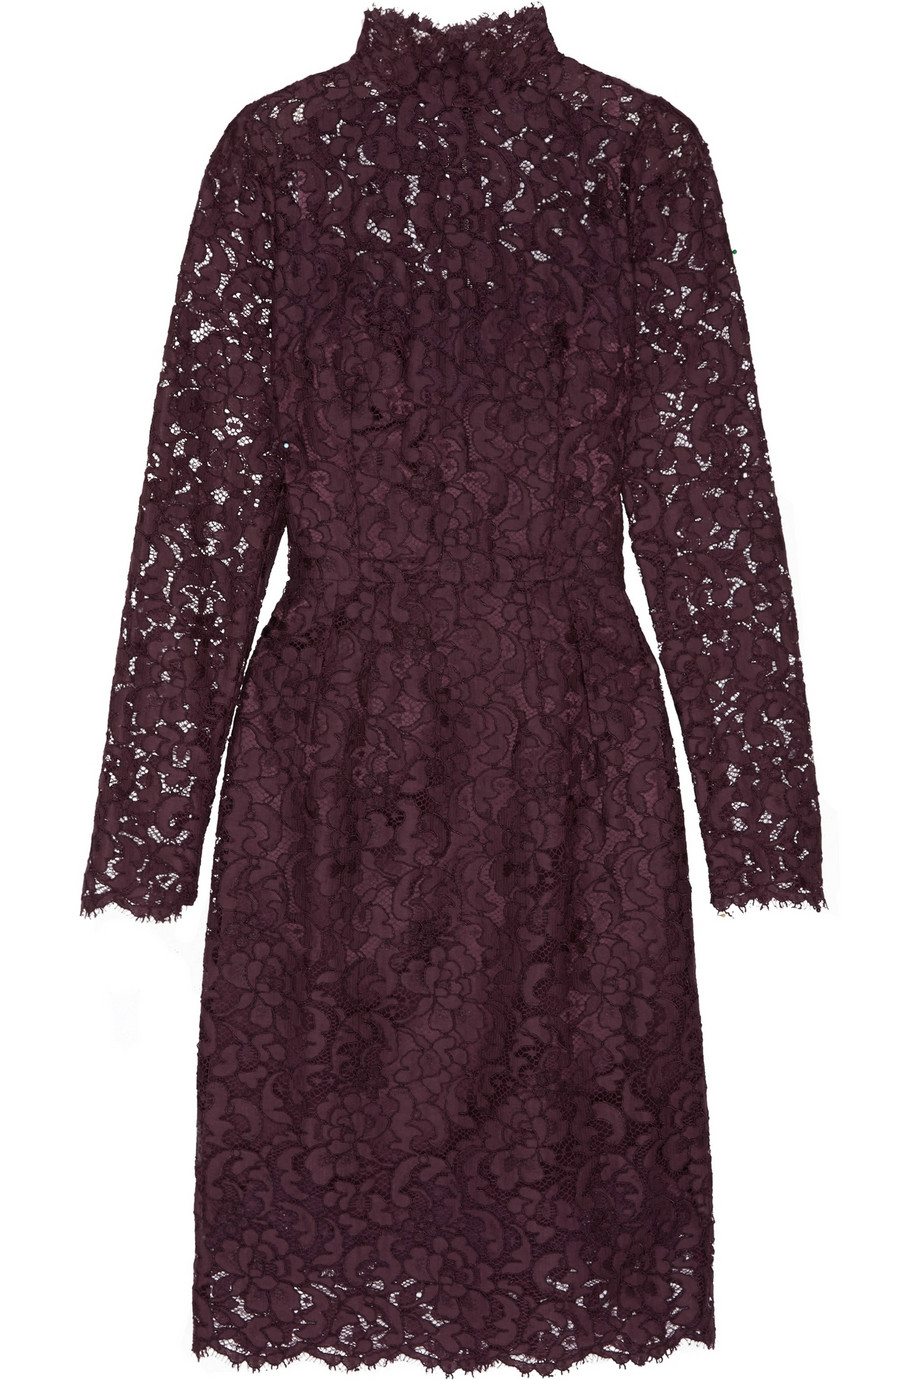 50 guest dresses for a winter wedding what to wear as for Wedding guest dress for winter